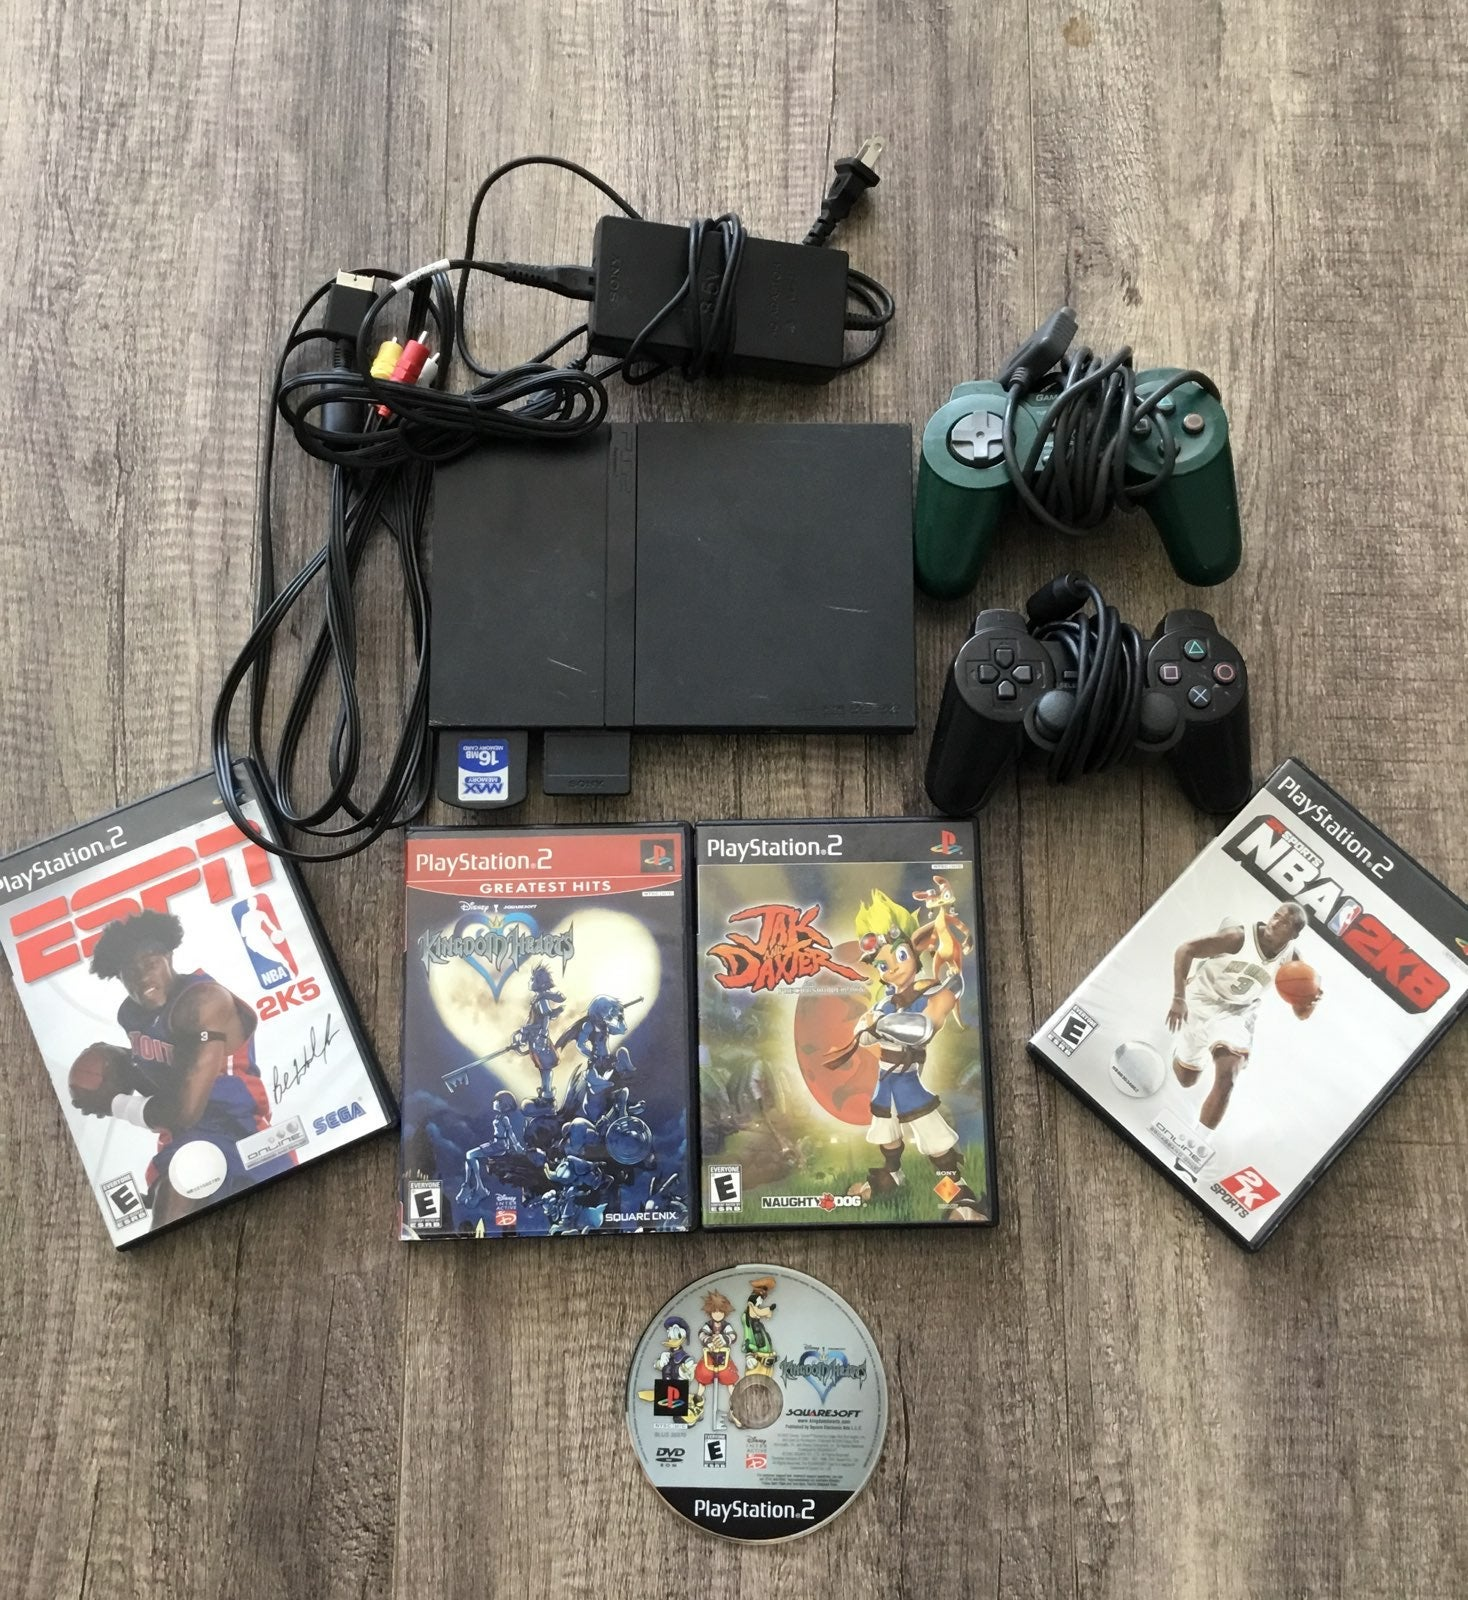 Sony PlayStation 2 consoles